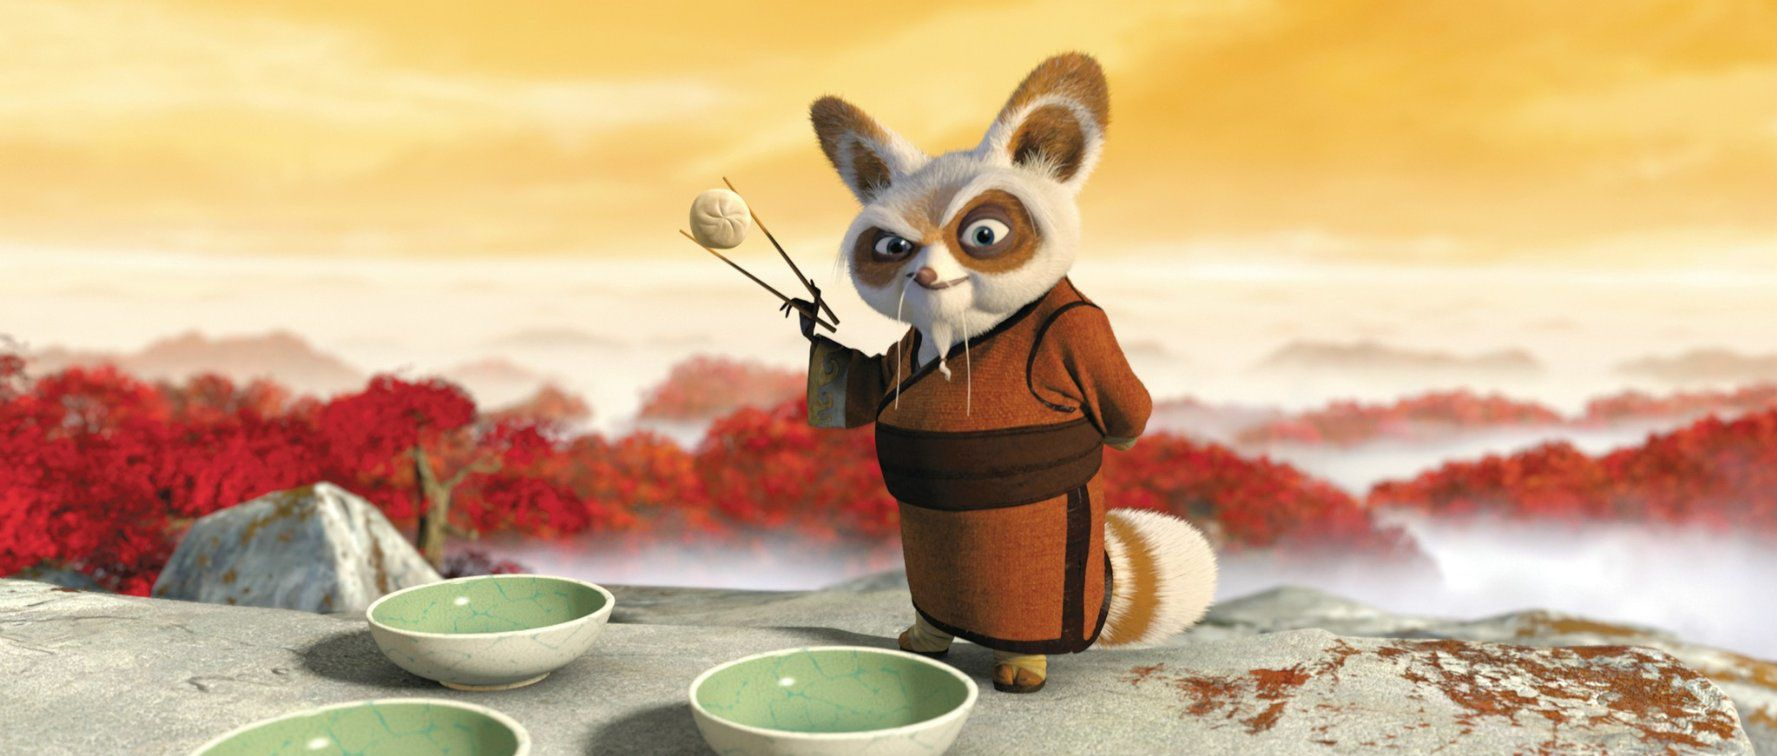 who are the most memorable kung fu panda characters?